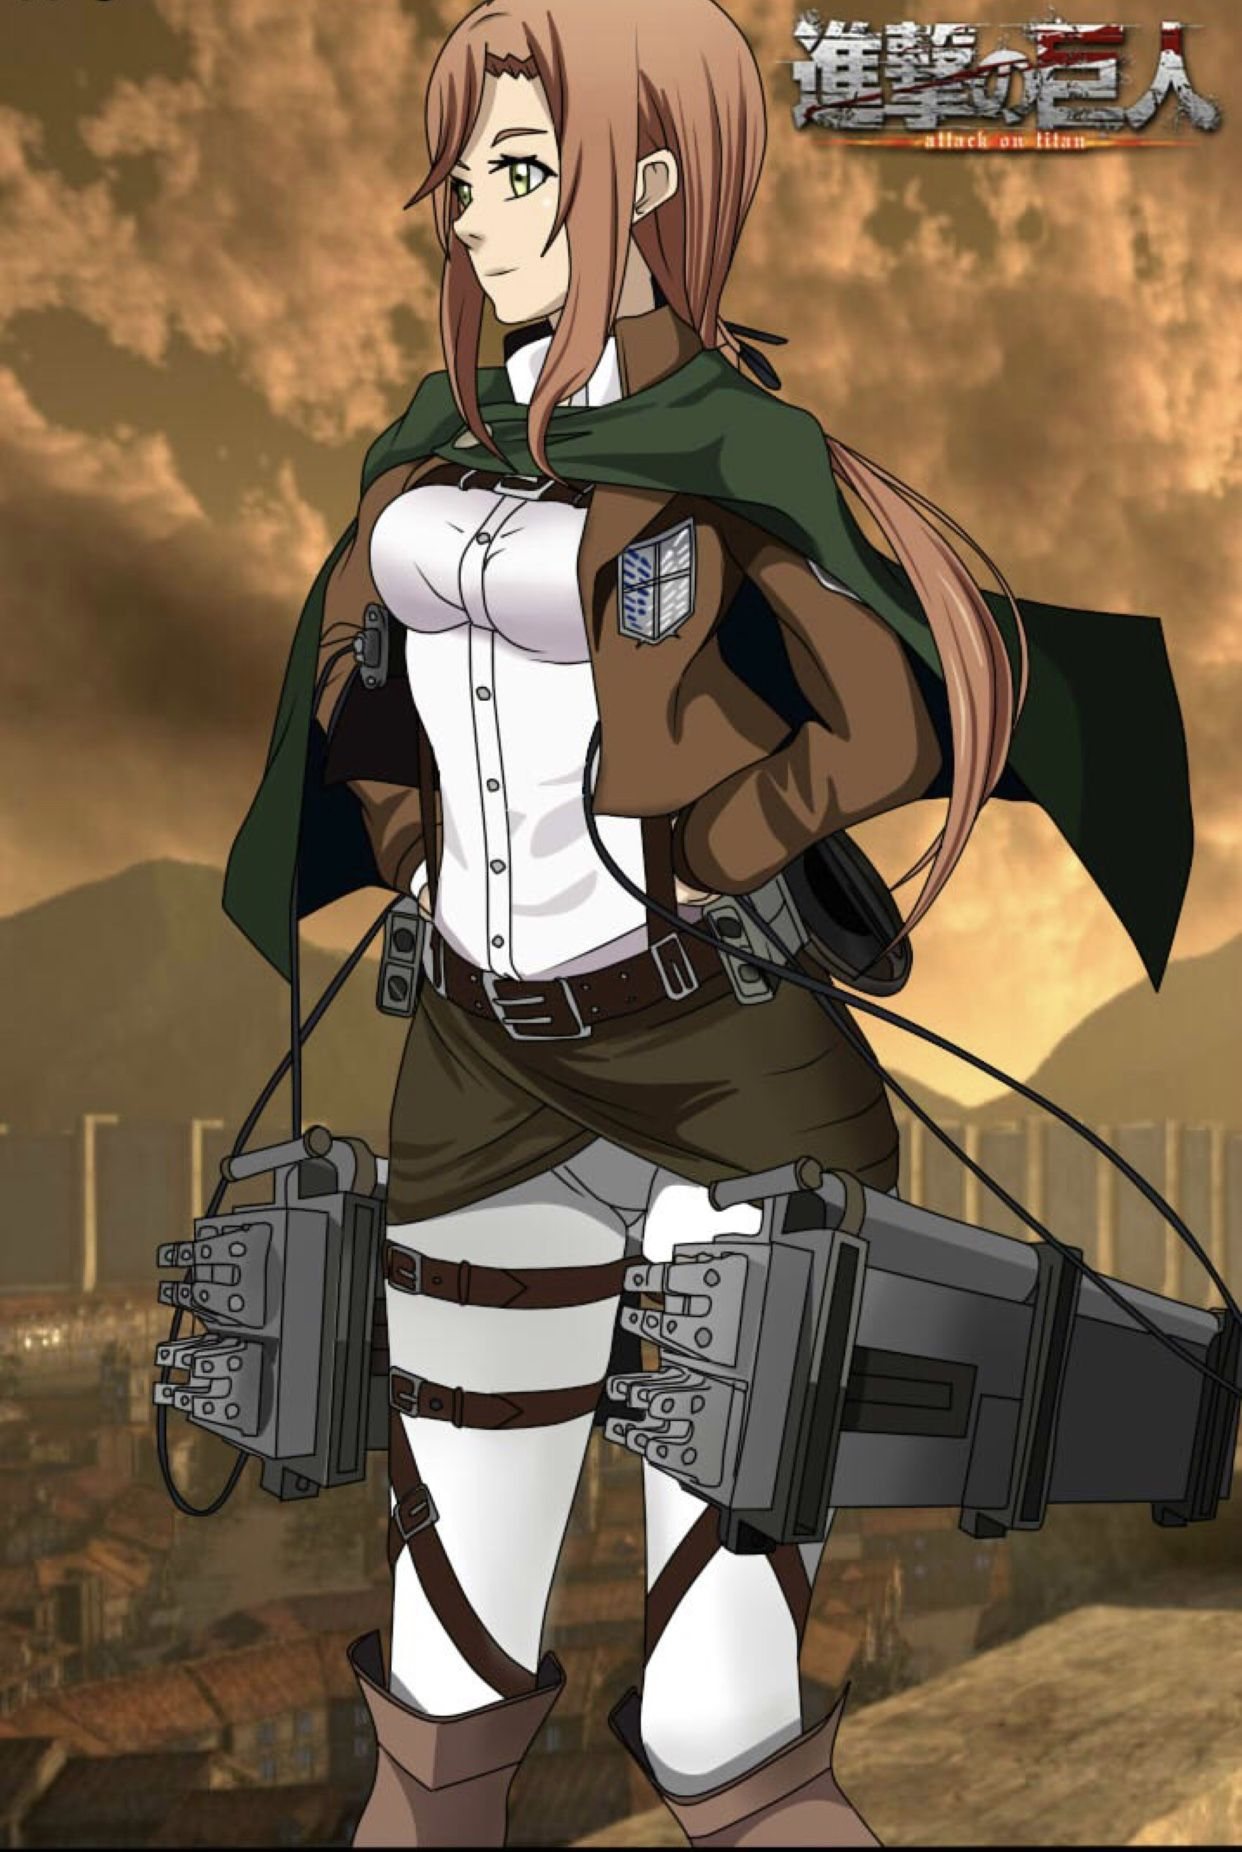 Pin by Artwork Pandaz on Attack On Titan Attack on titan